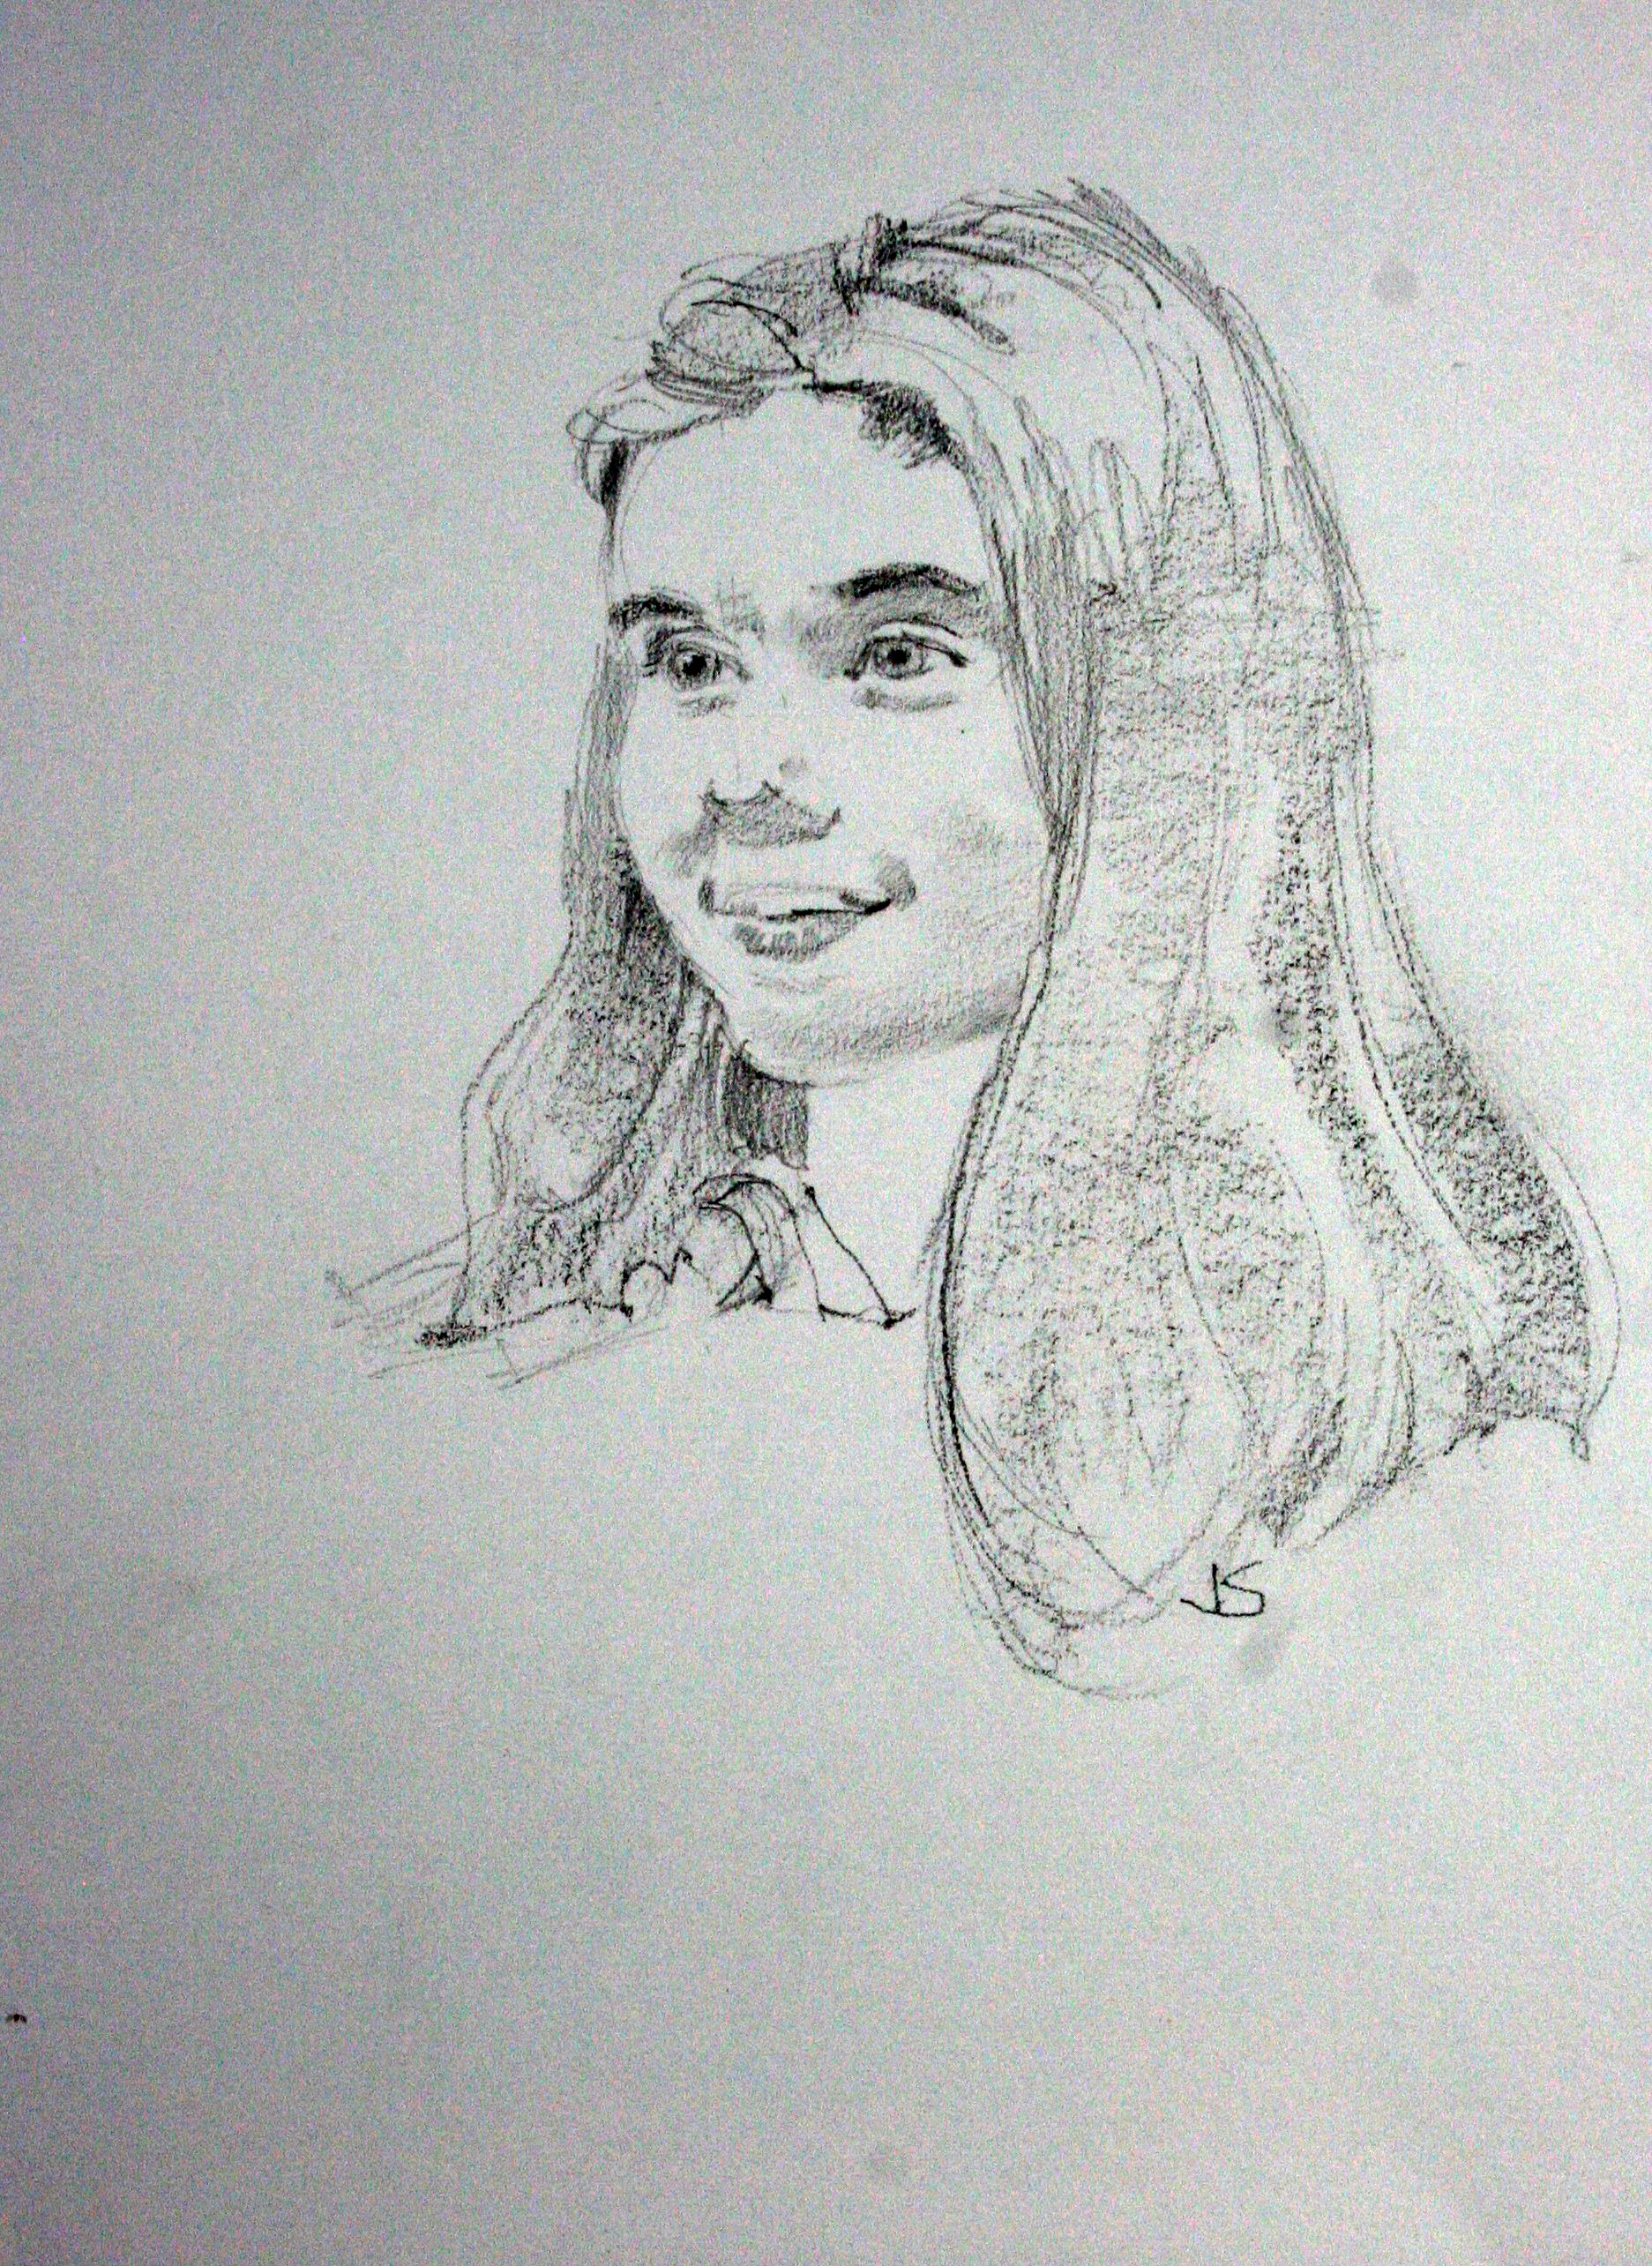 Jeff Suntala did this drawing of Tillie.